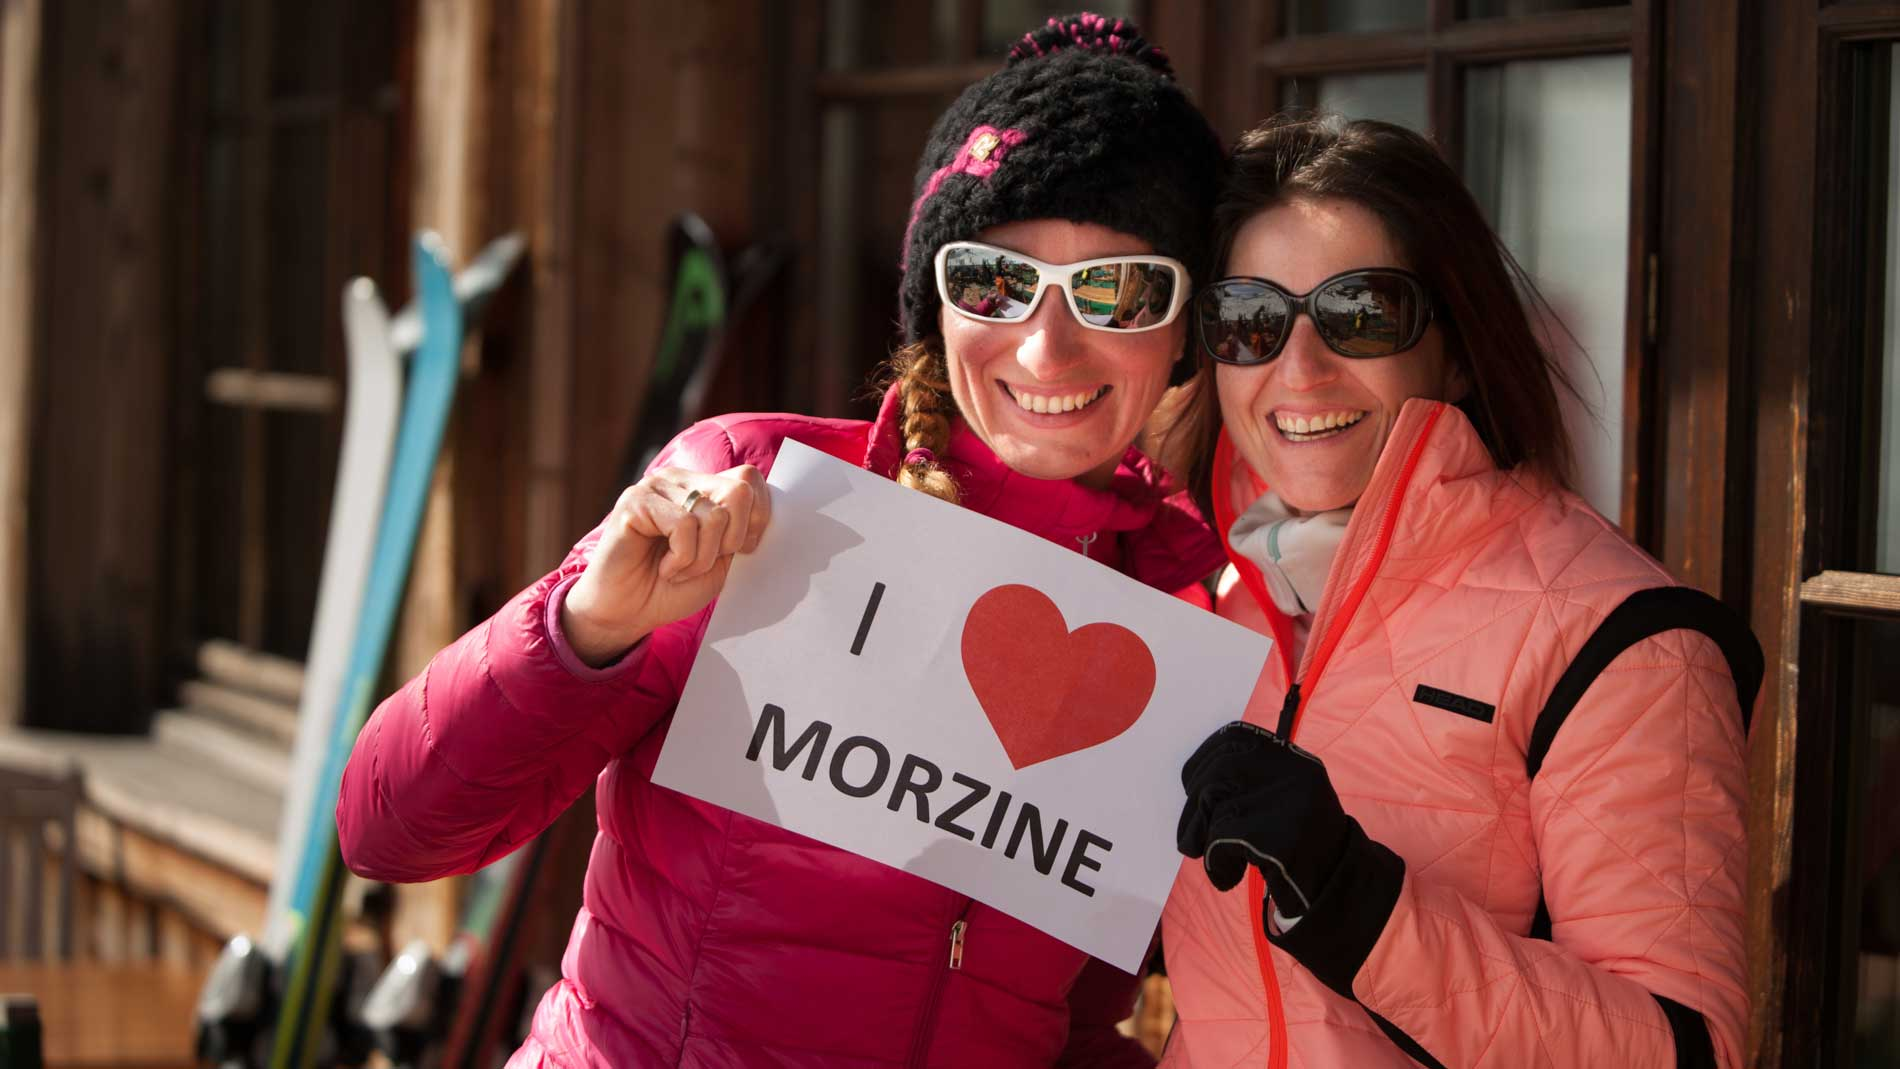 we love morzine